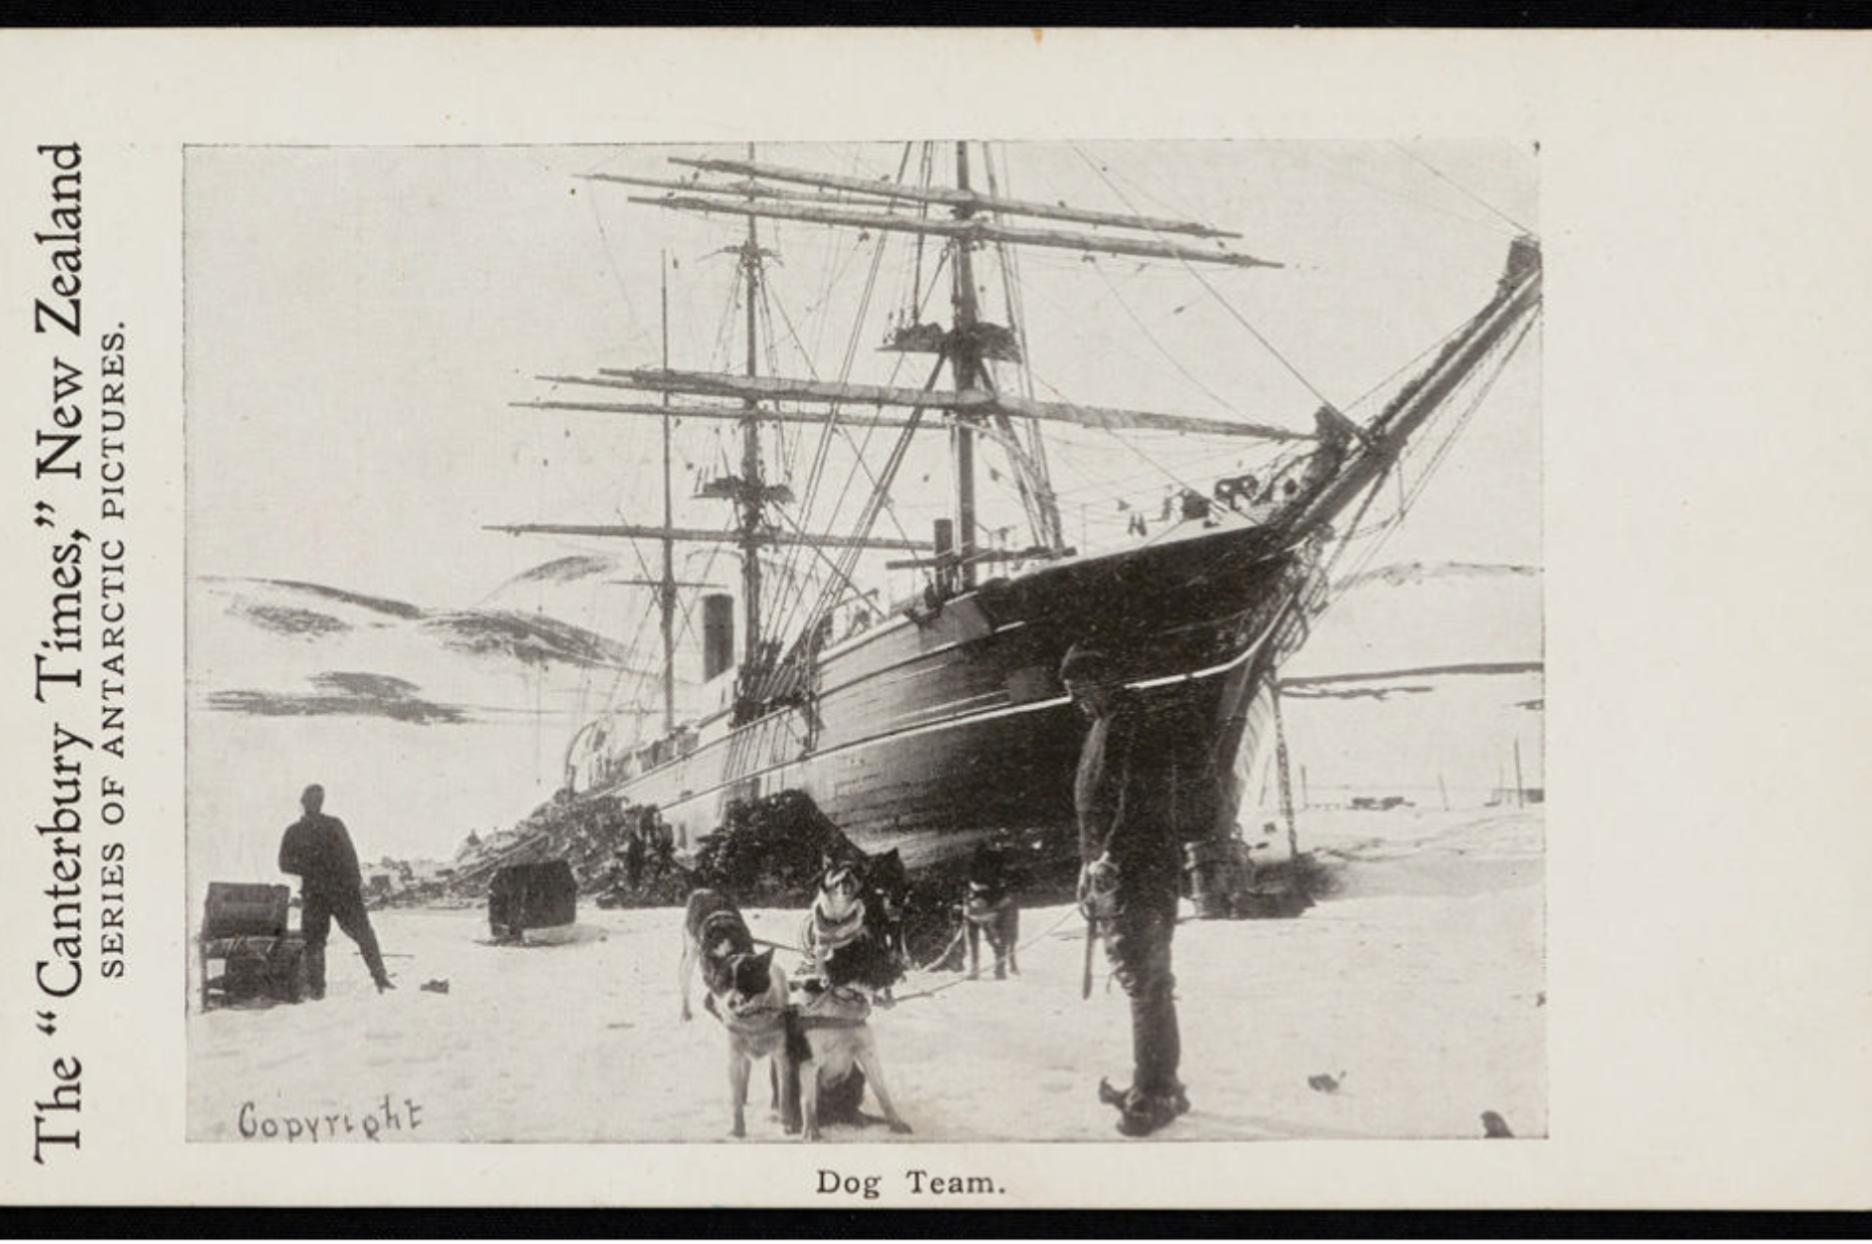 9947 1 Dog team on the ice in Antarctica during the 'Discovery Expedition' of 1901-04